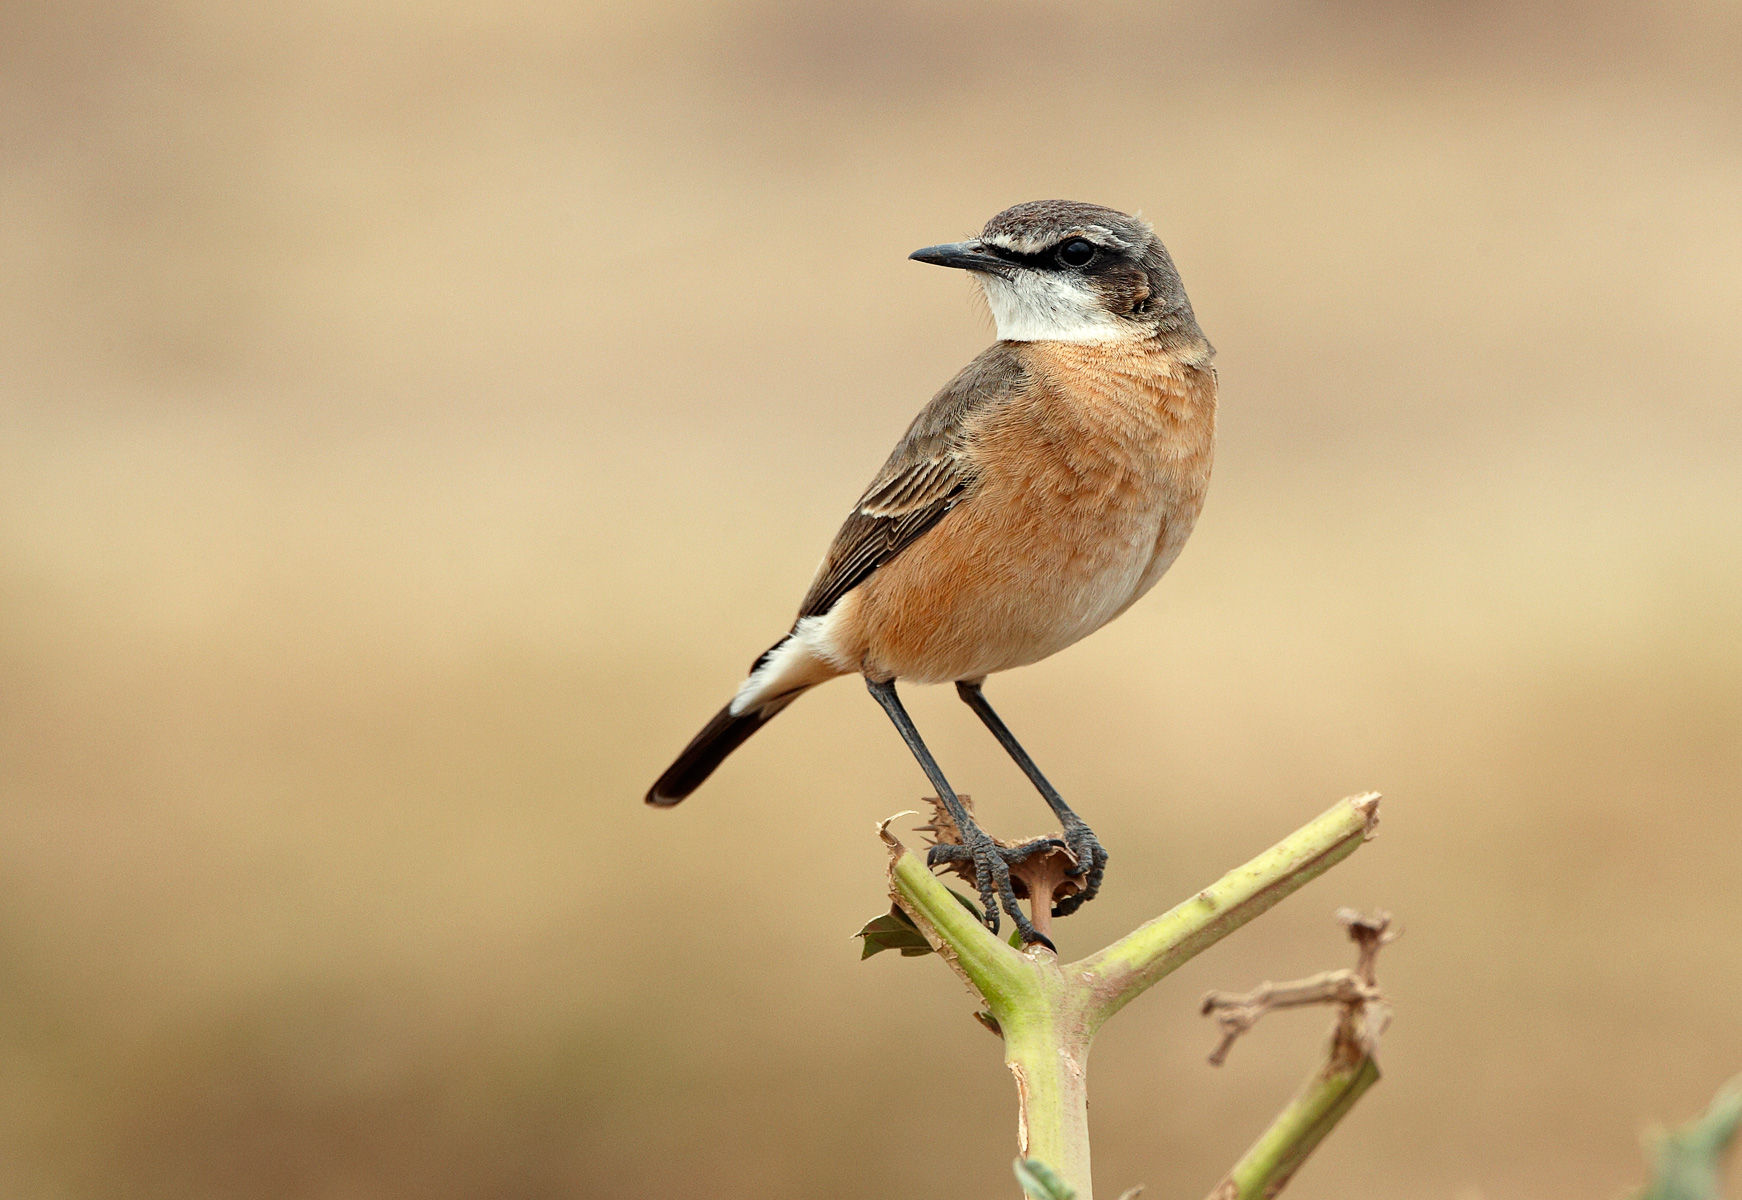 Red-breasted Wheatear